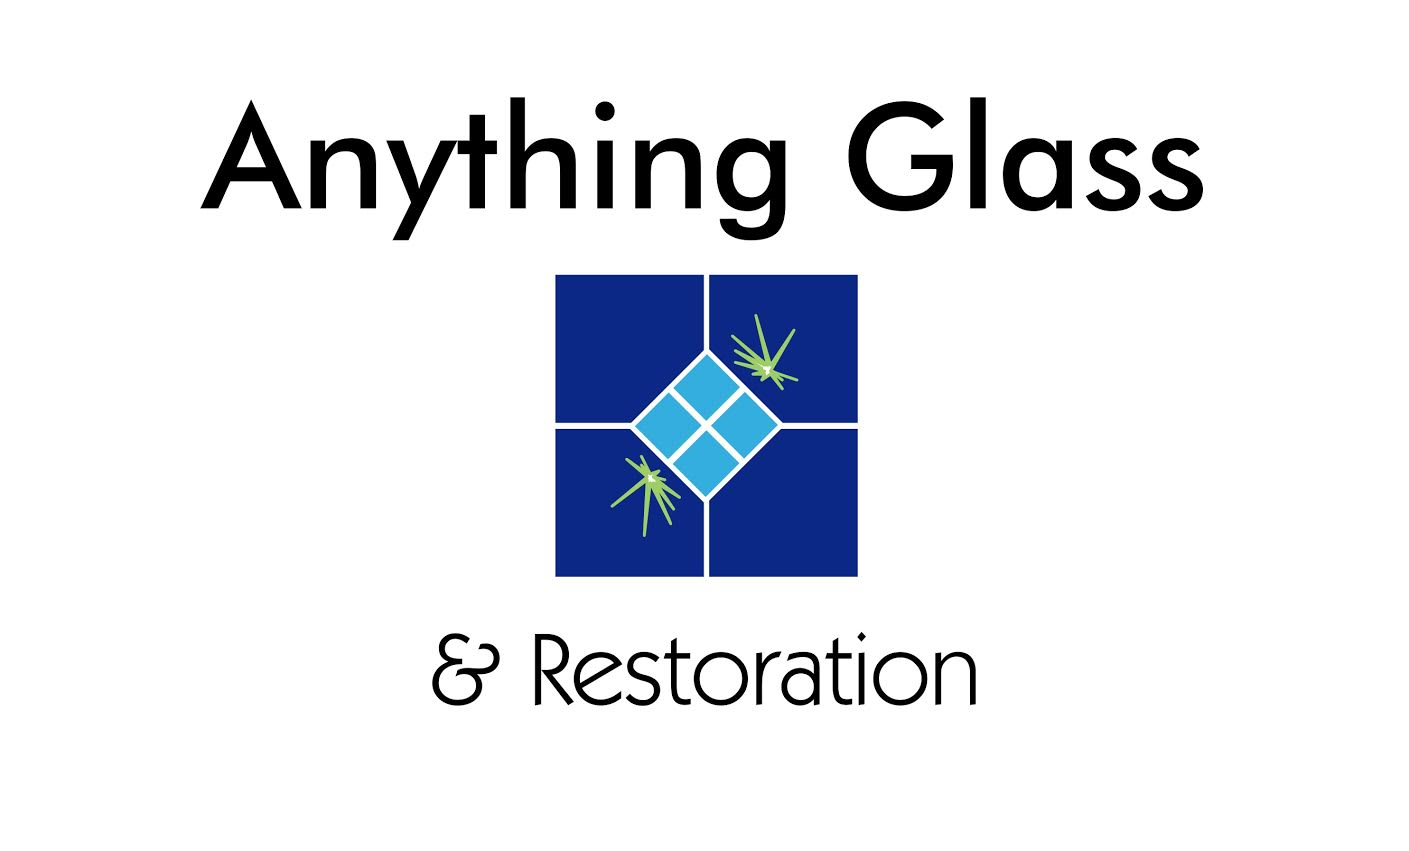 Anything Glass & Restoration